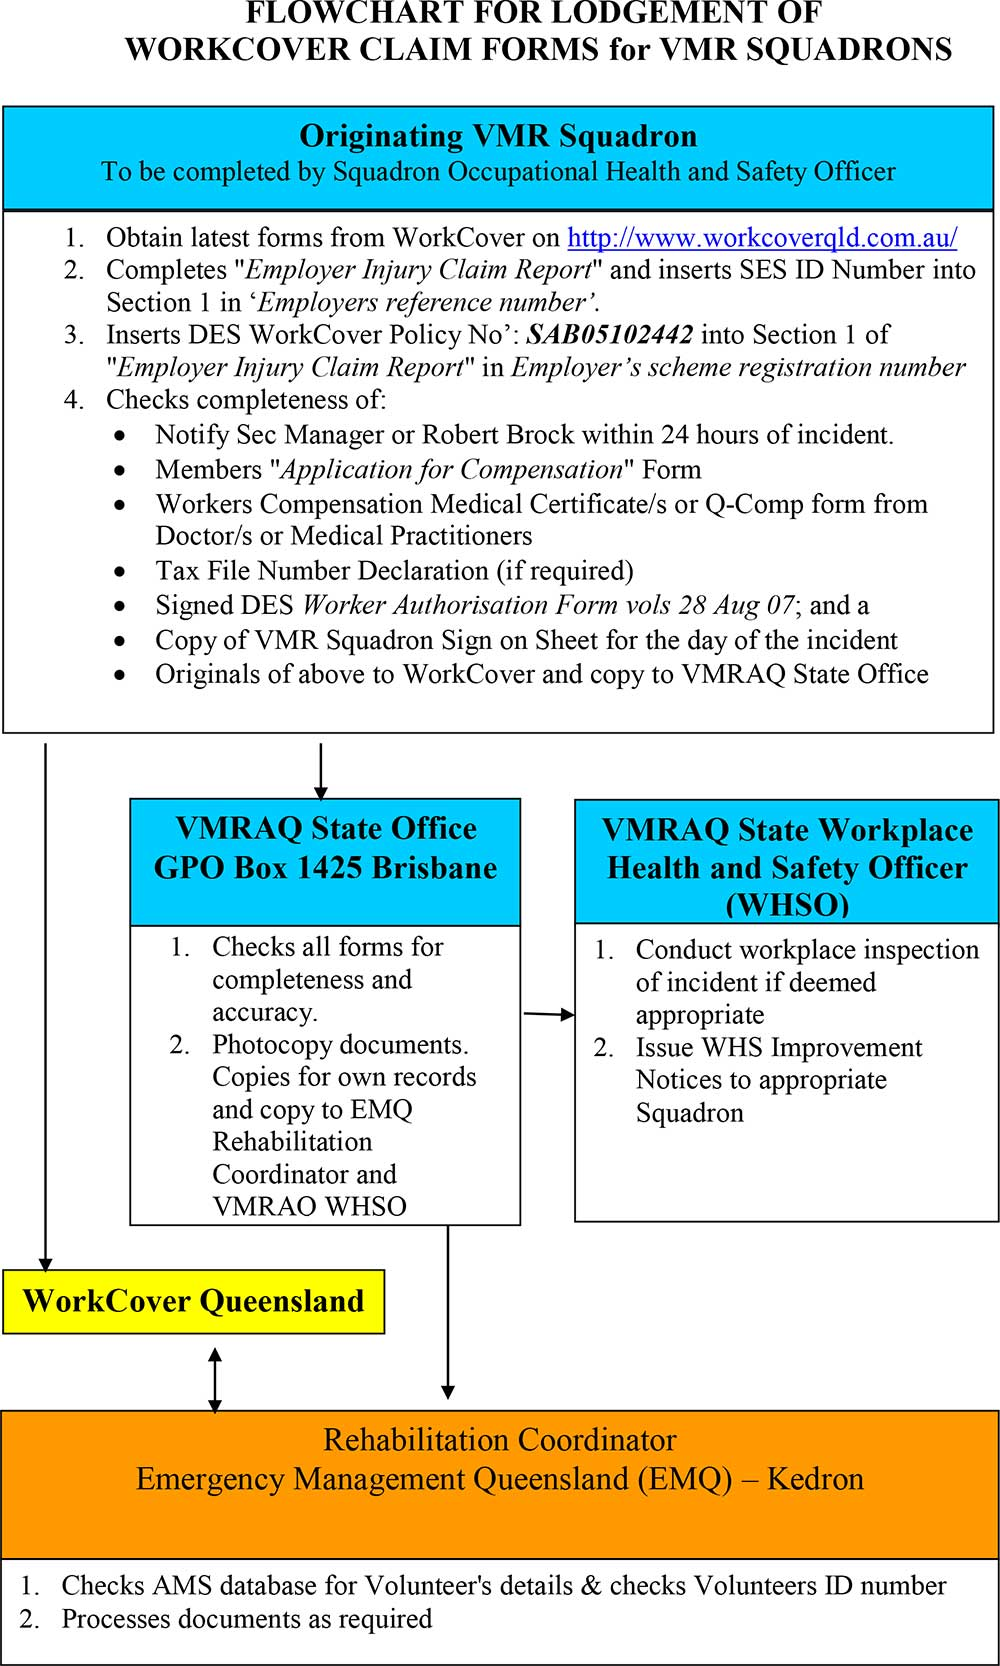 Flowchart for Lodgement of WorkCover Claim Forms for VMR Squadrons